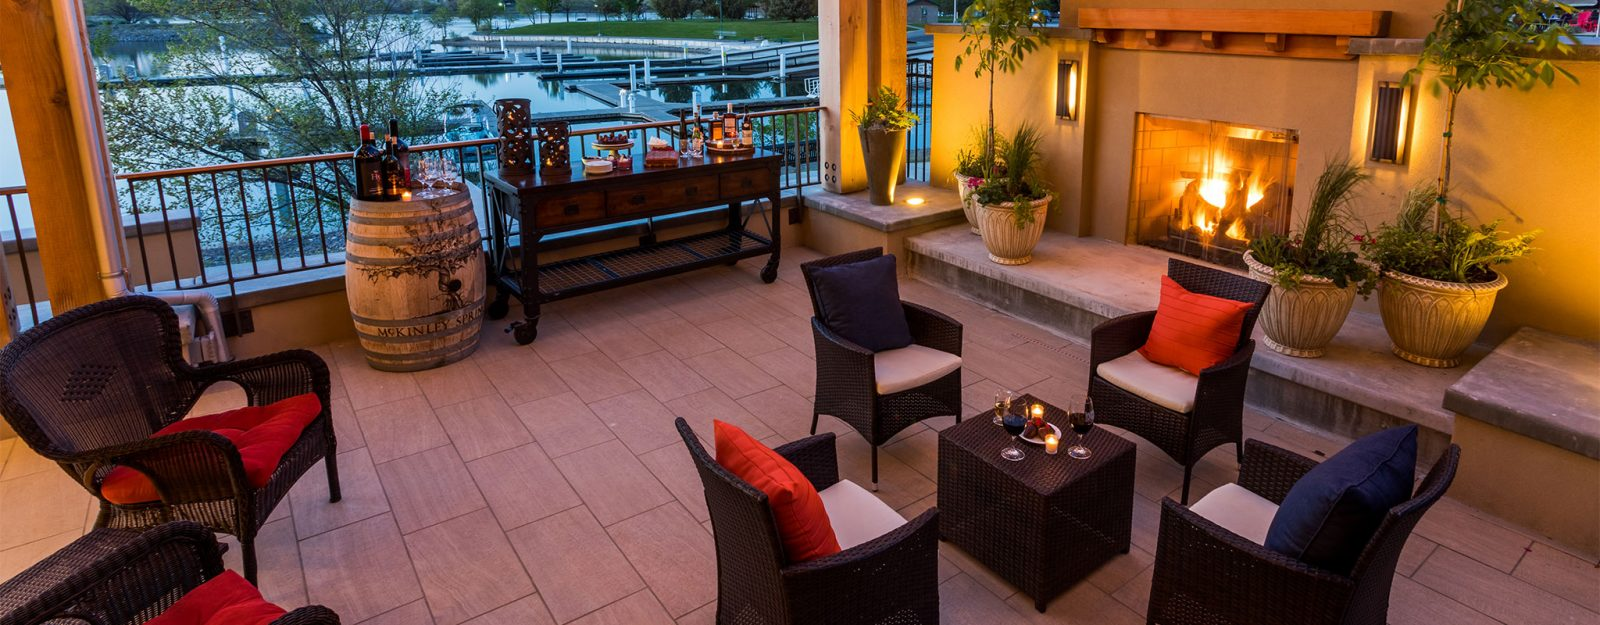 Poolside hotel with fireplace